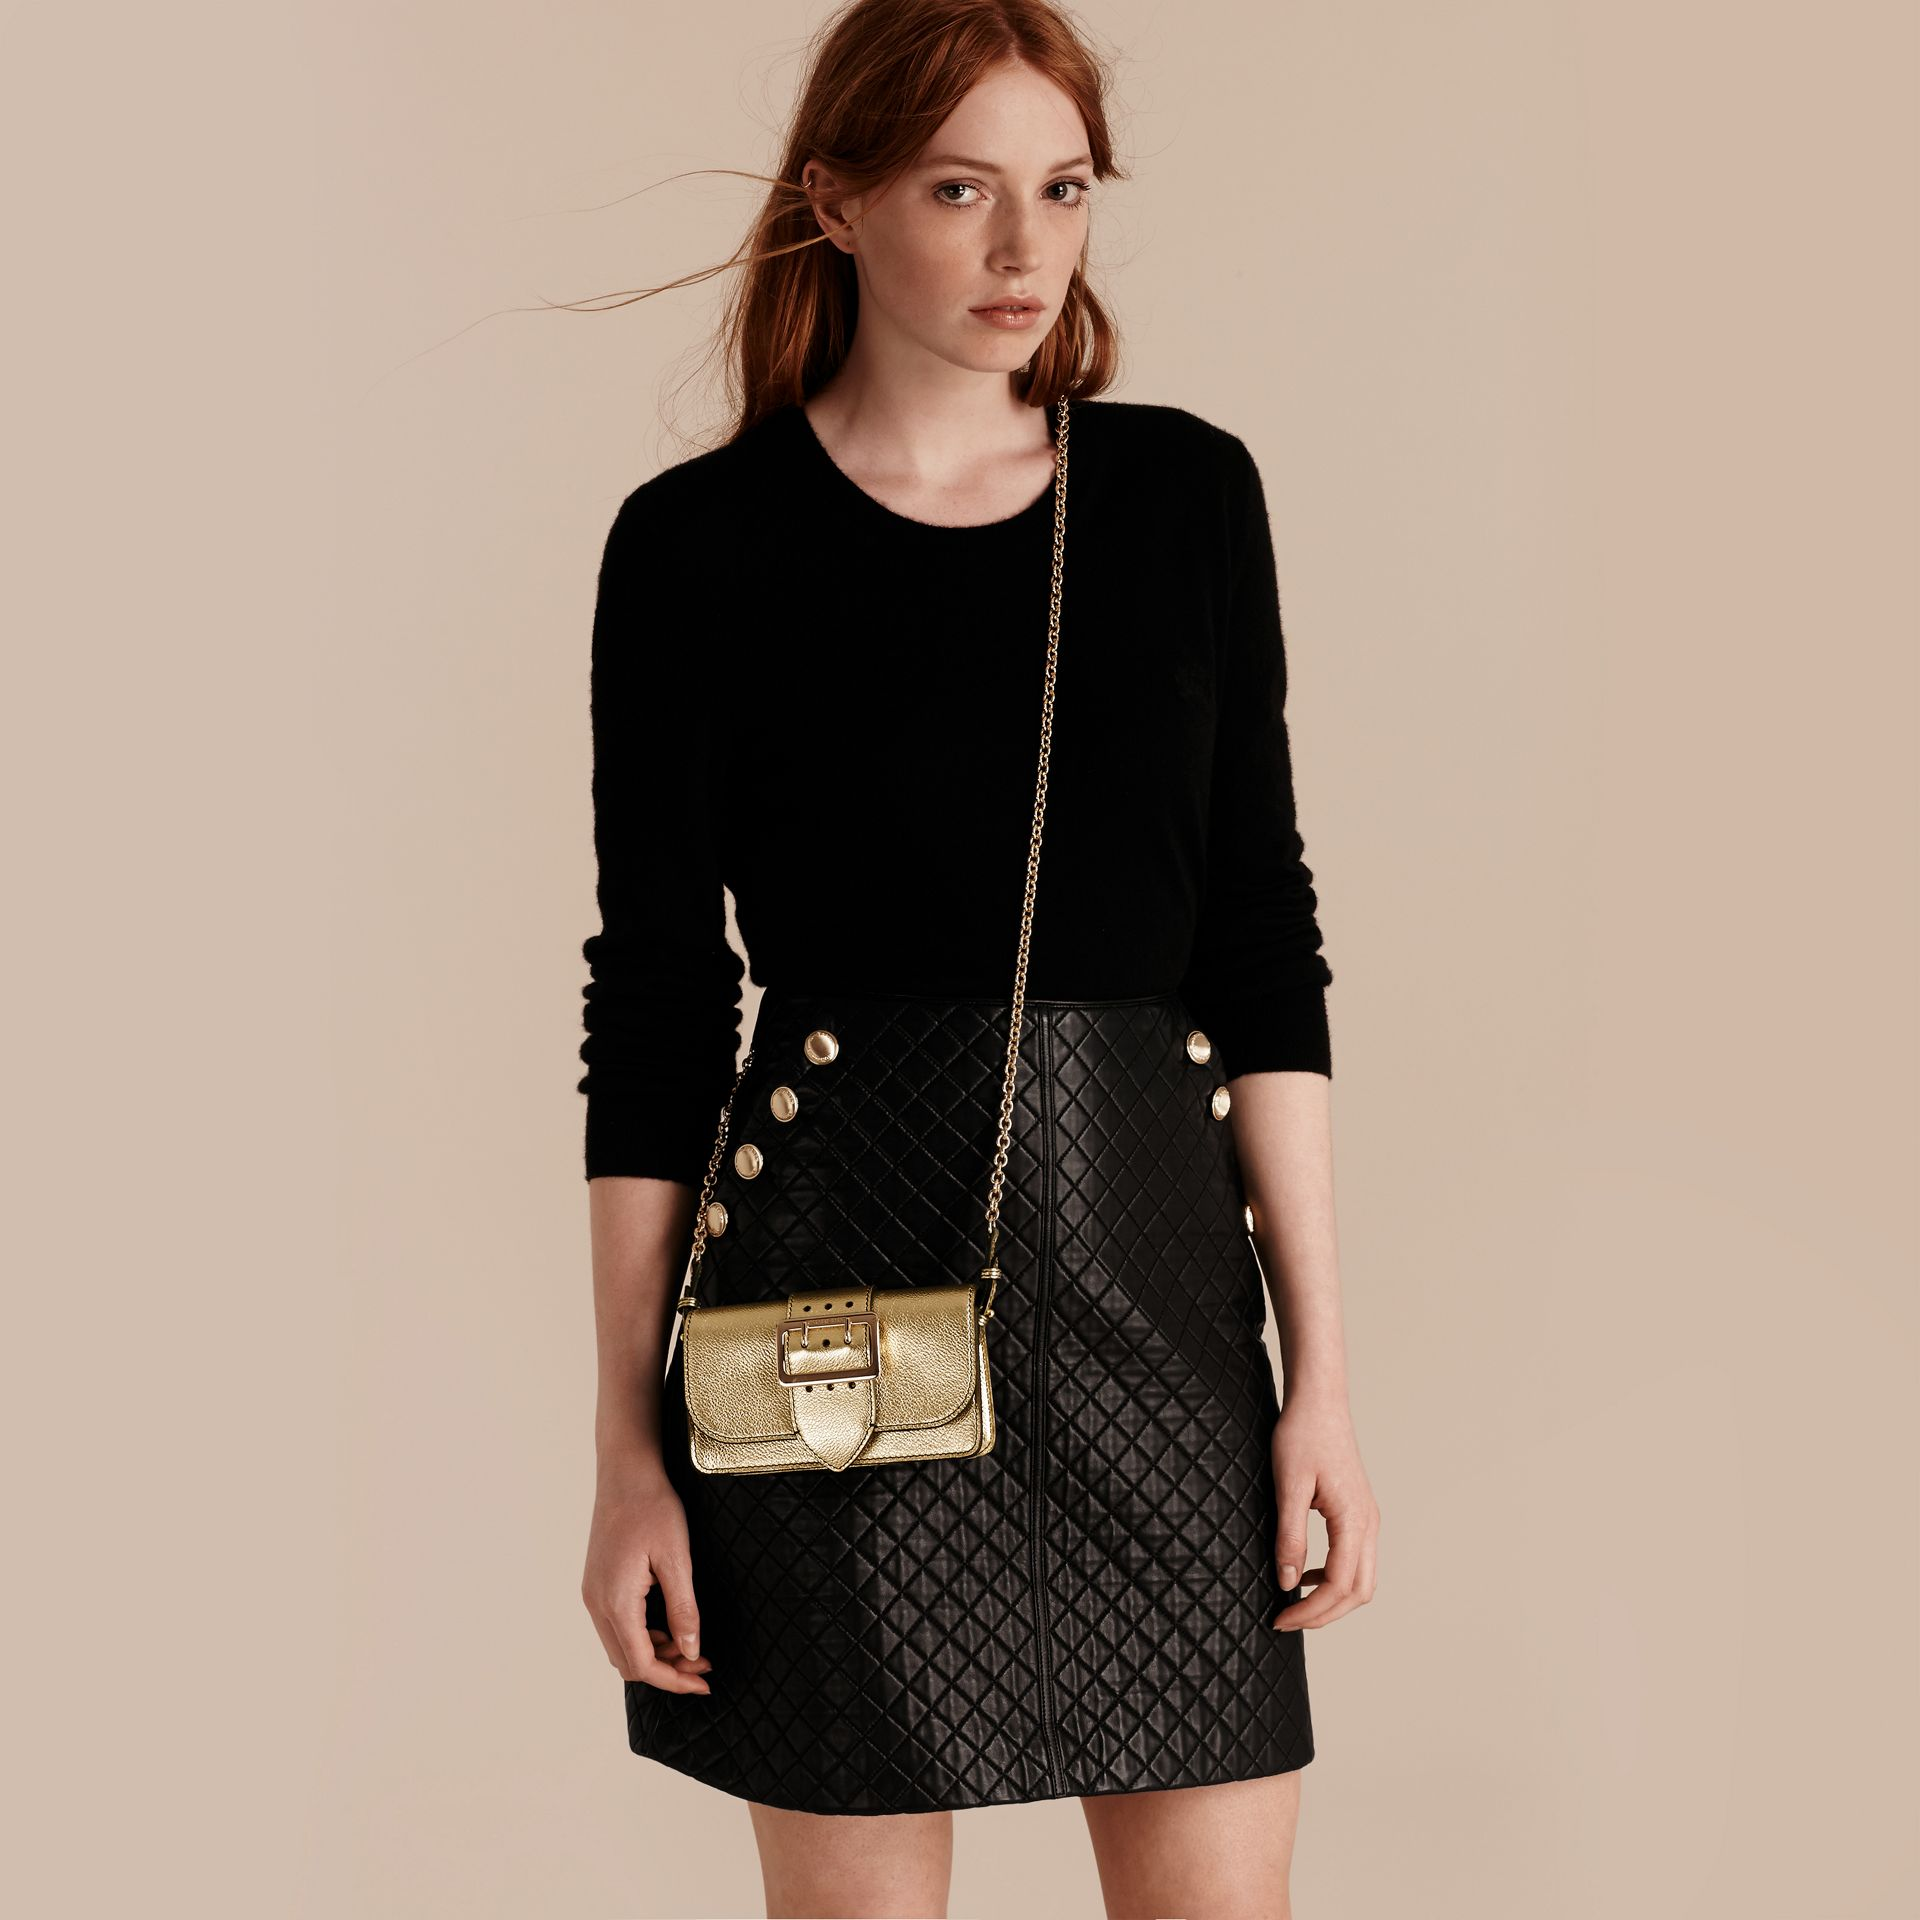 The Mini Buckle Bag in Metallic Grainy Leather in Gold - gallery image 3